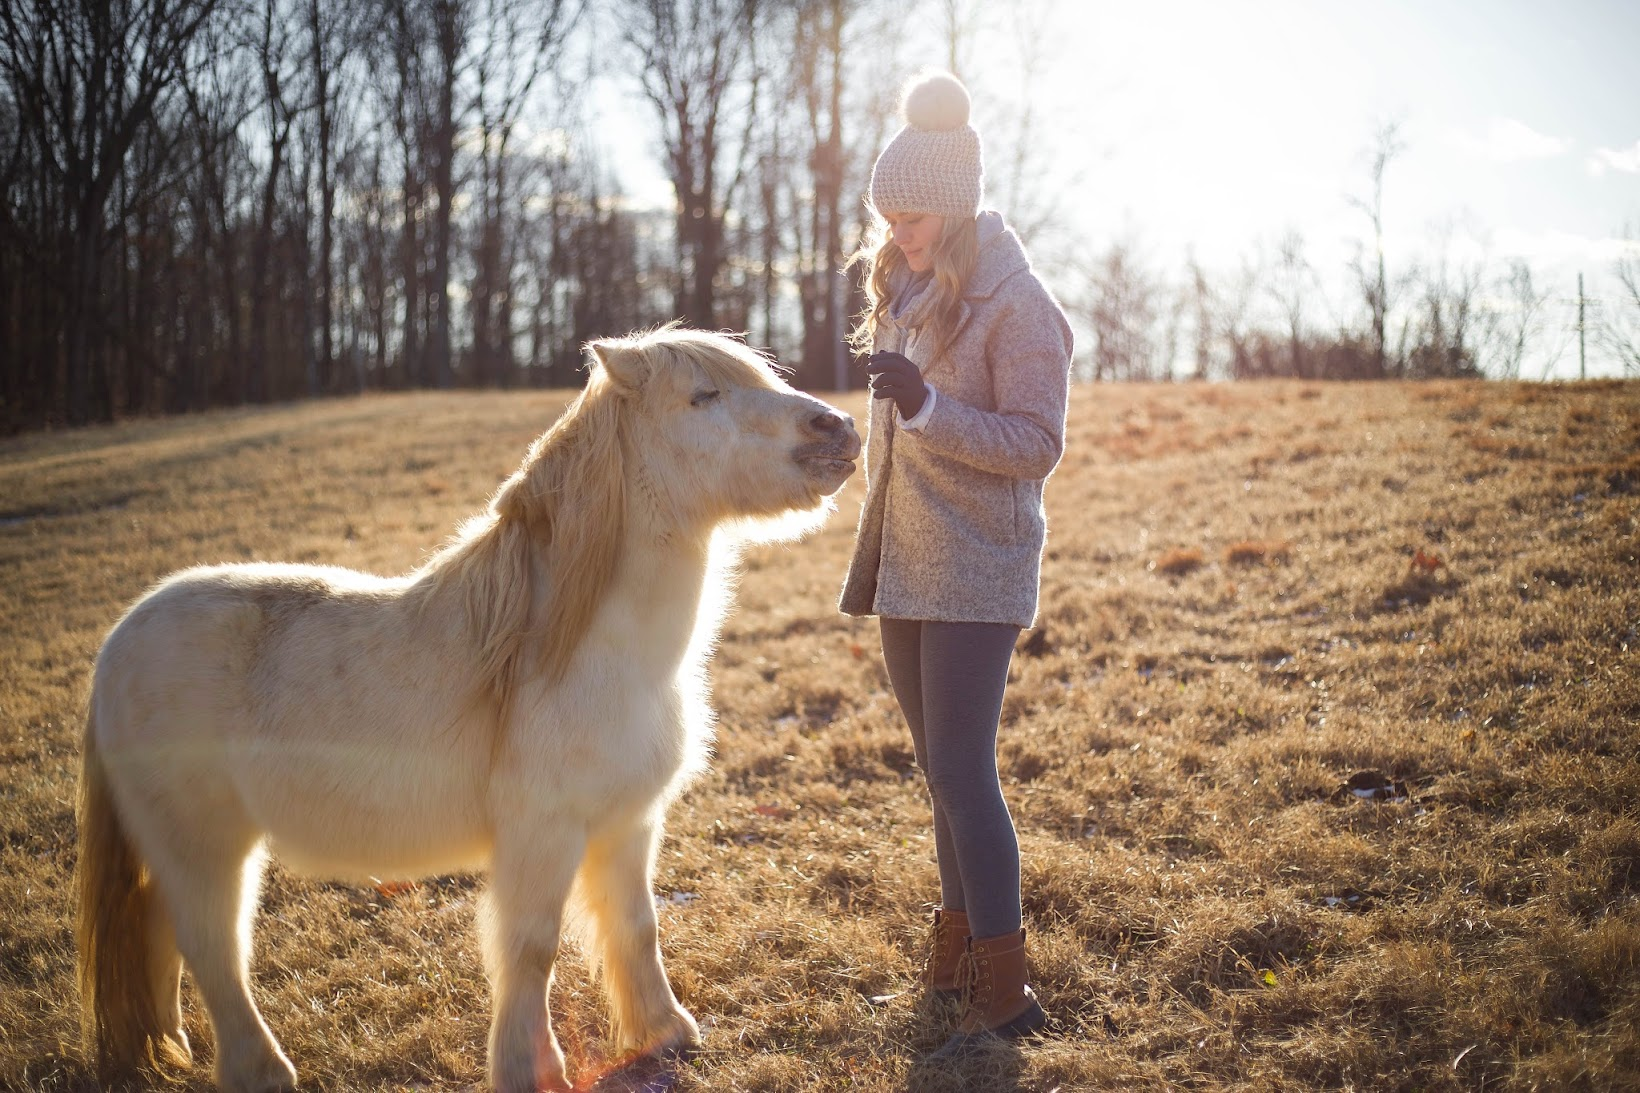 White Miniature Horse and Woman